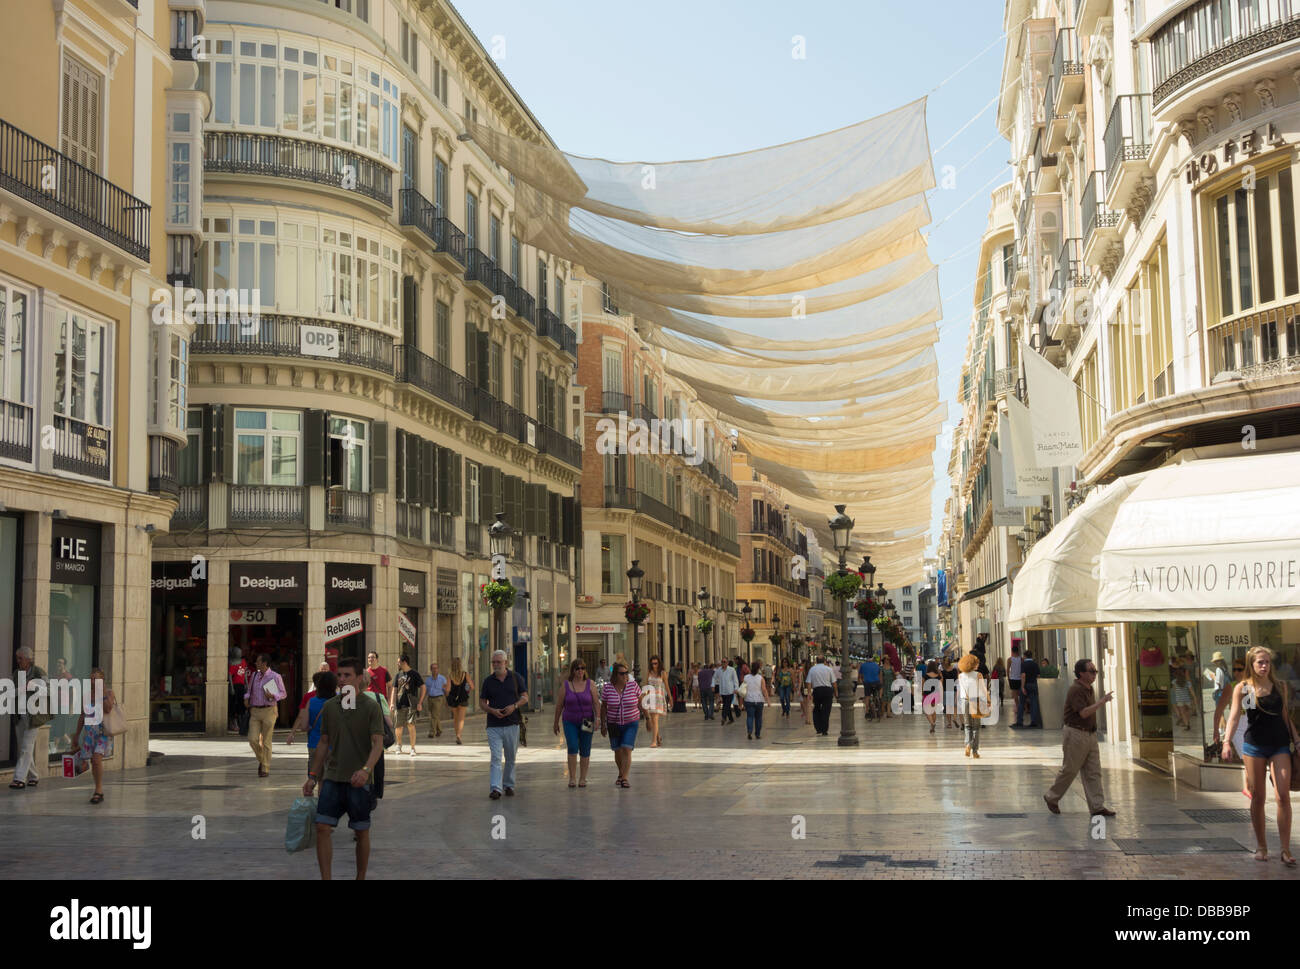 Shops In Malaga City Centre Spain With The Main Shopping